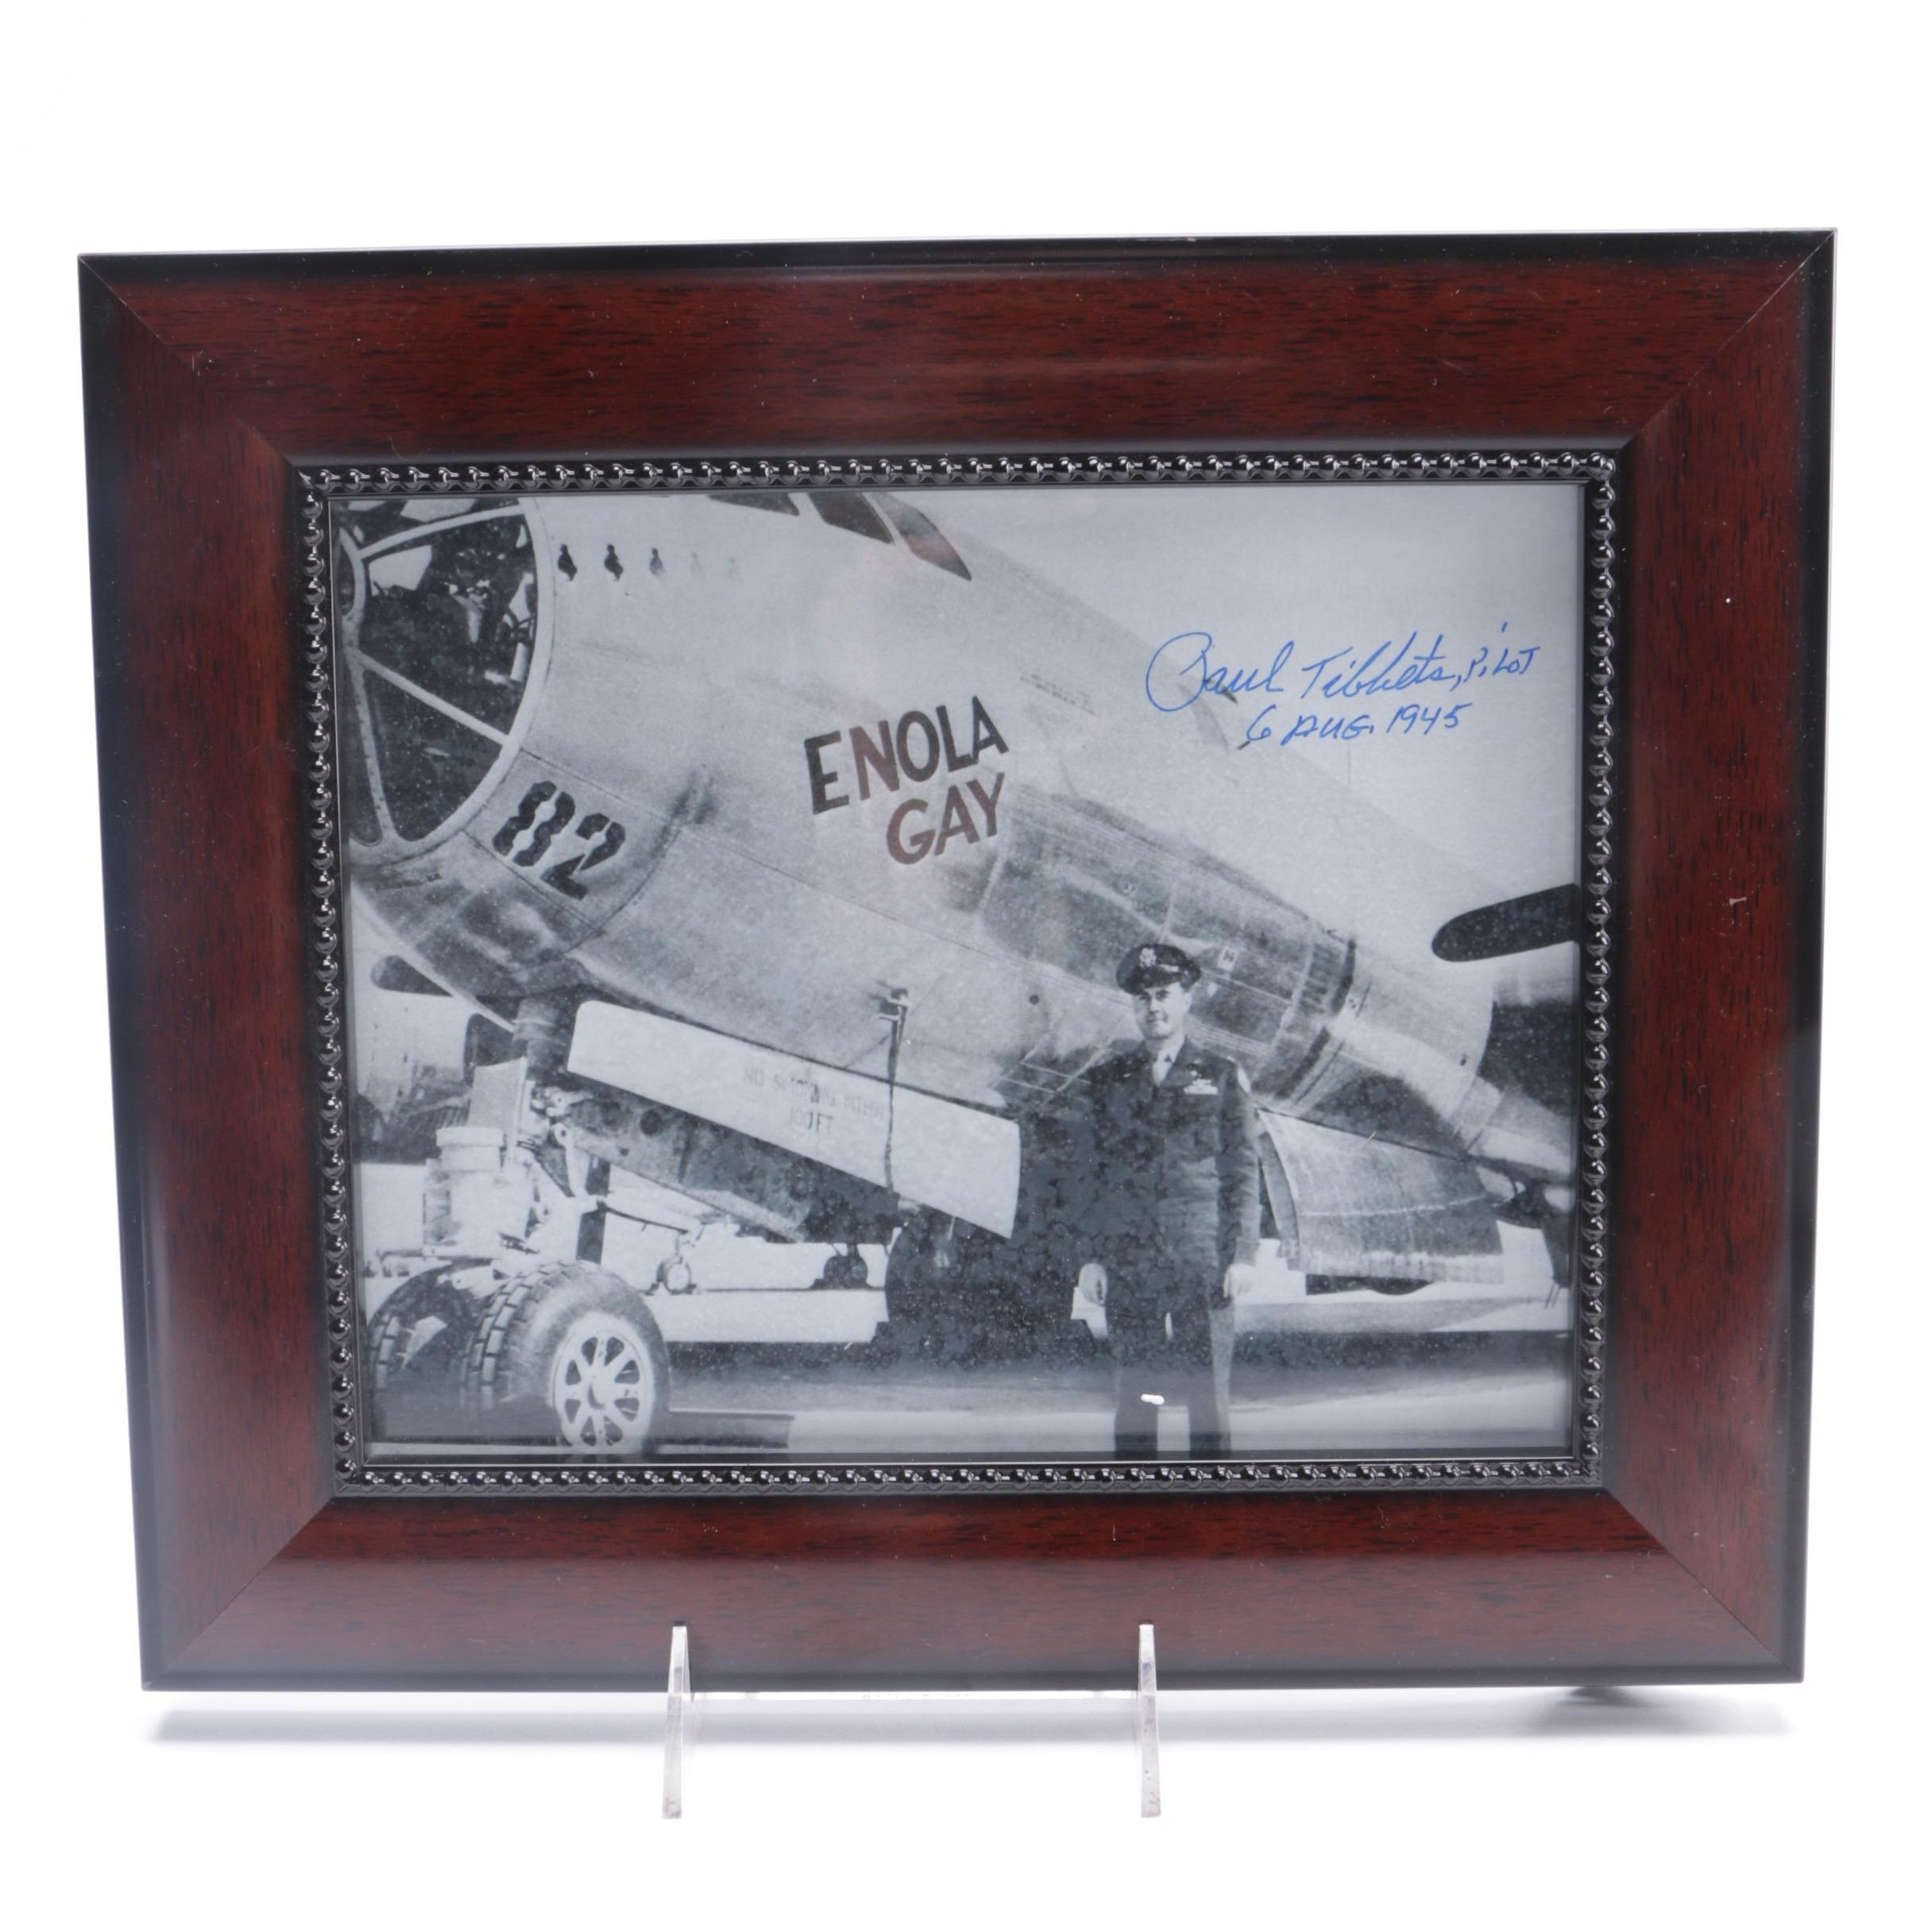 Signed Photograph of General Paul Tibbets with the Enola Gay